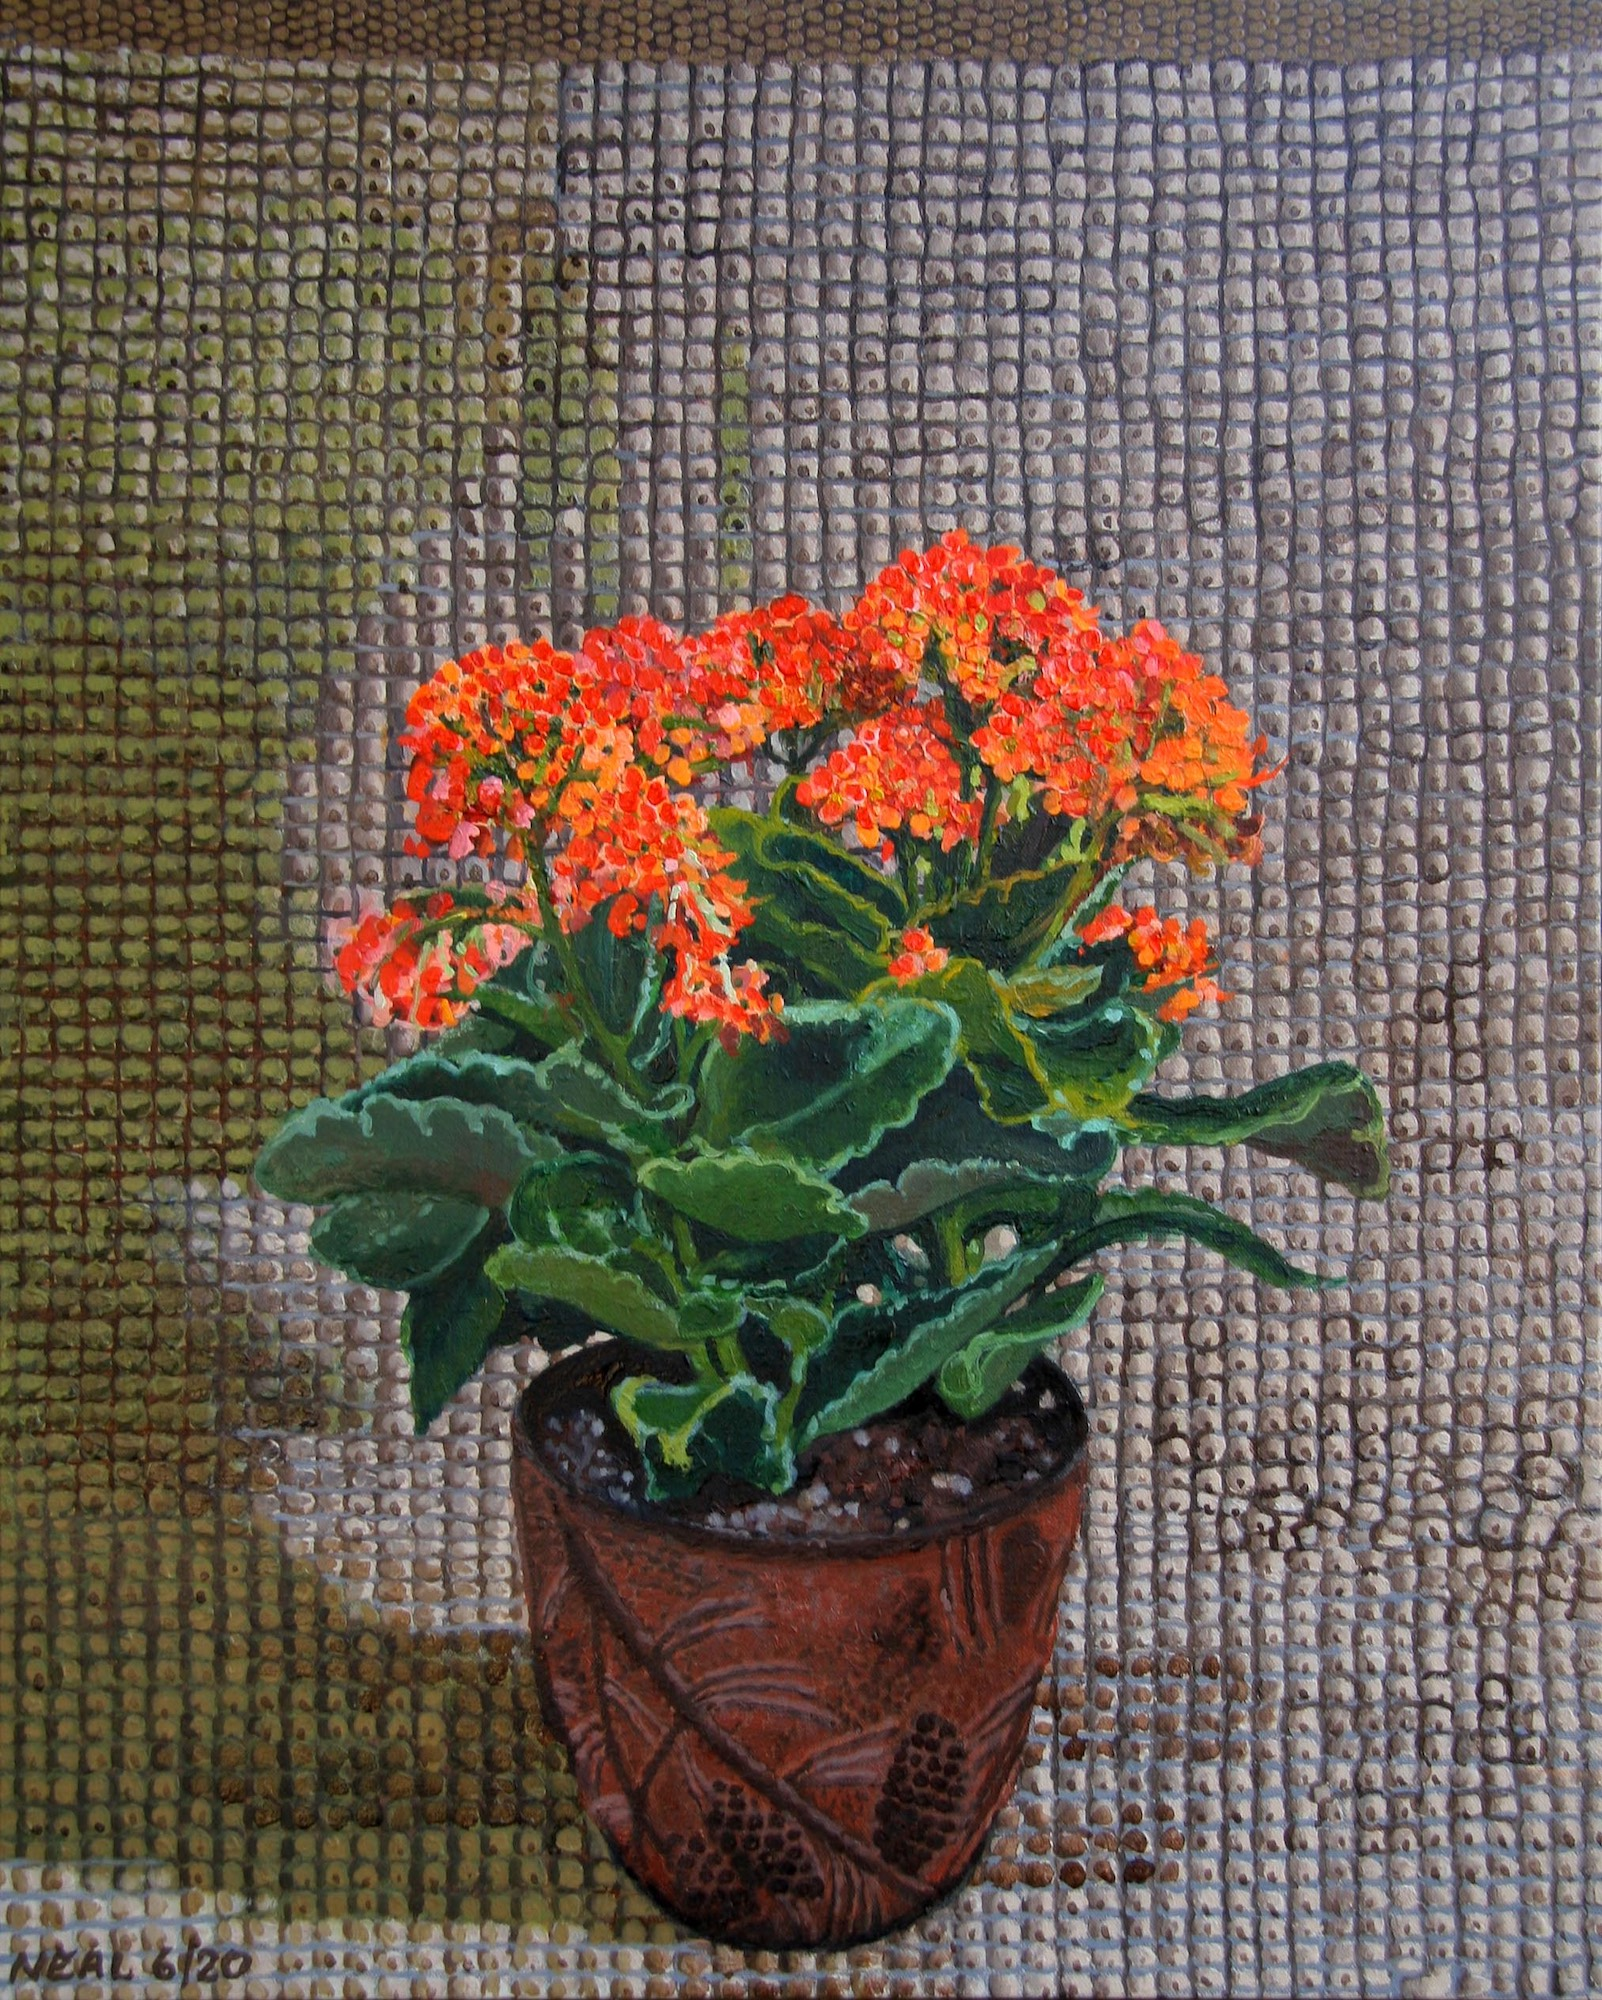 flowering plant on a textured grid